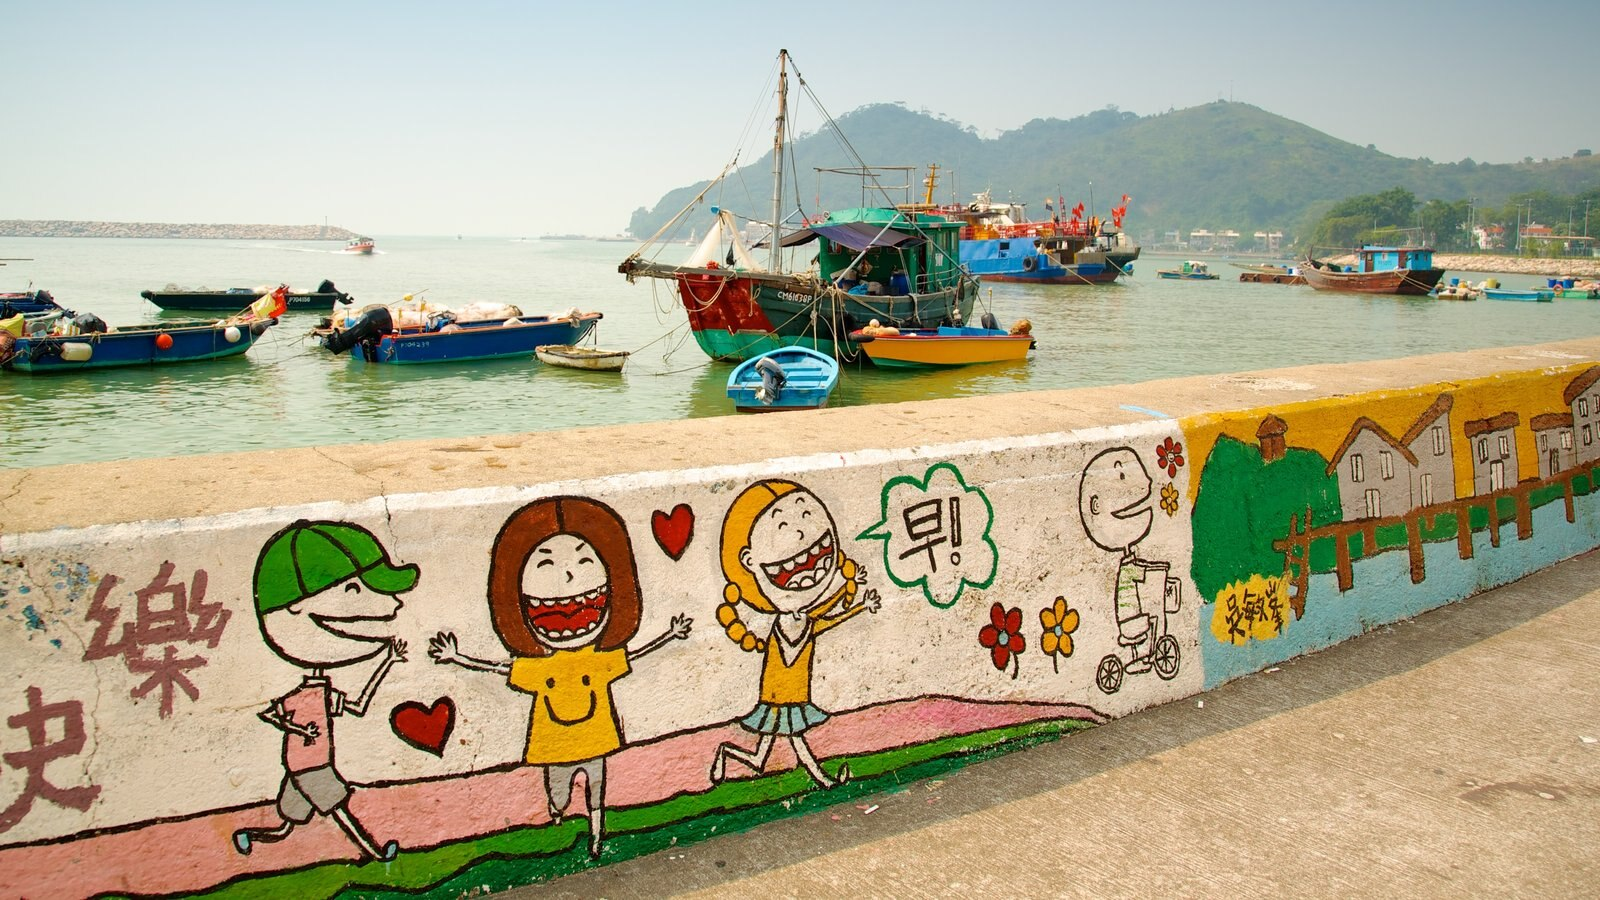 Tai O Fishing Village showing a bay or harbor, outdoor art and boating